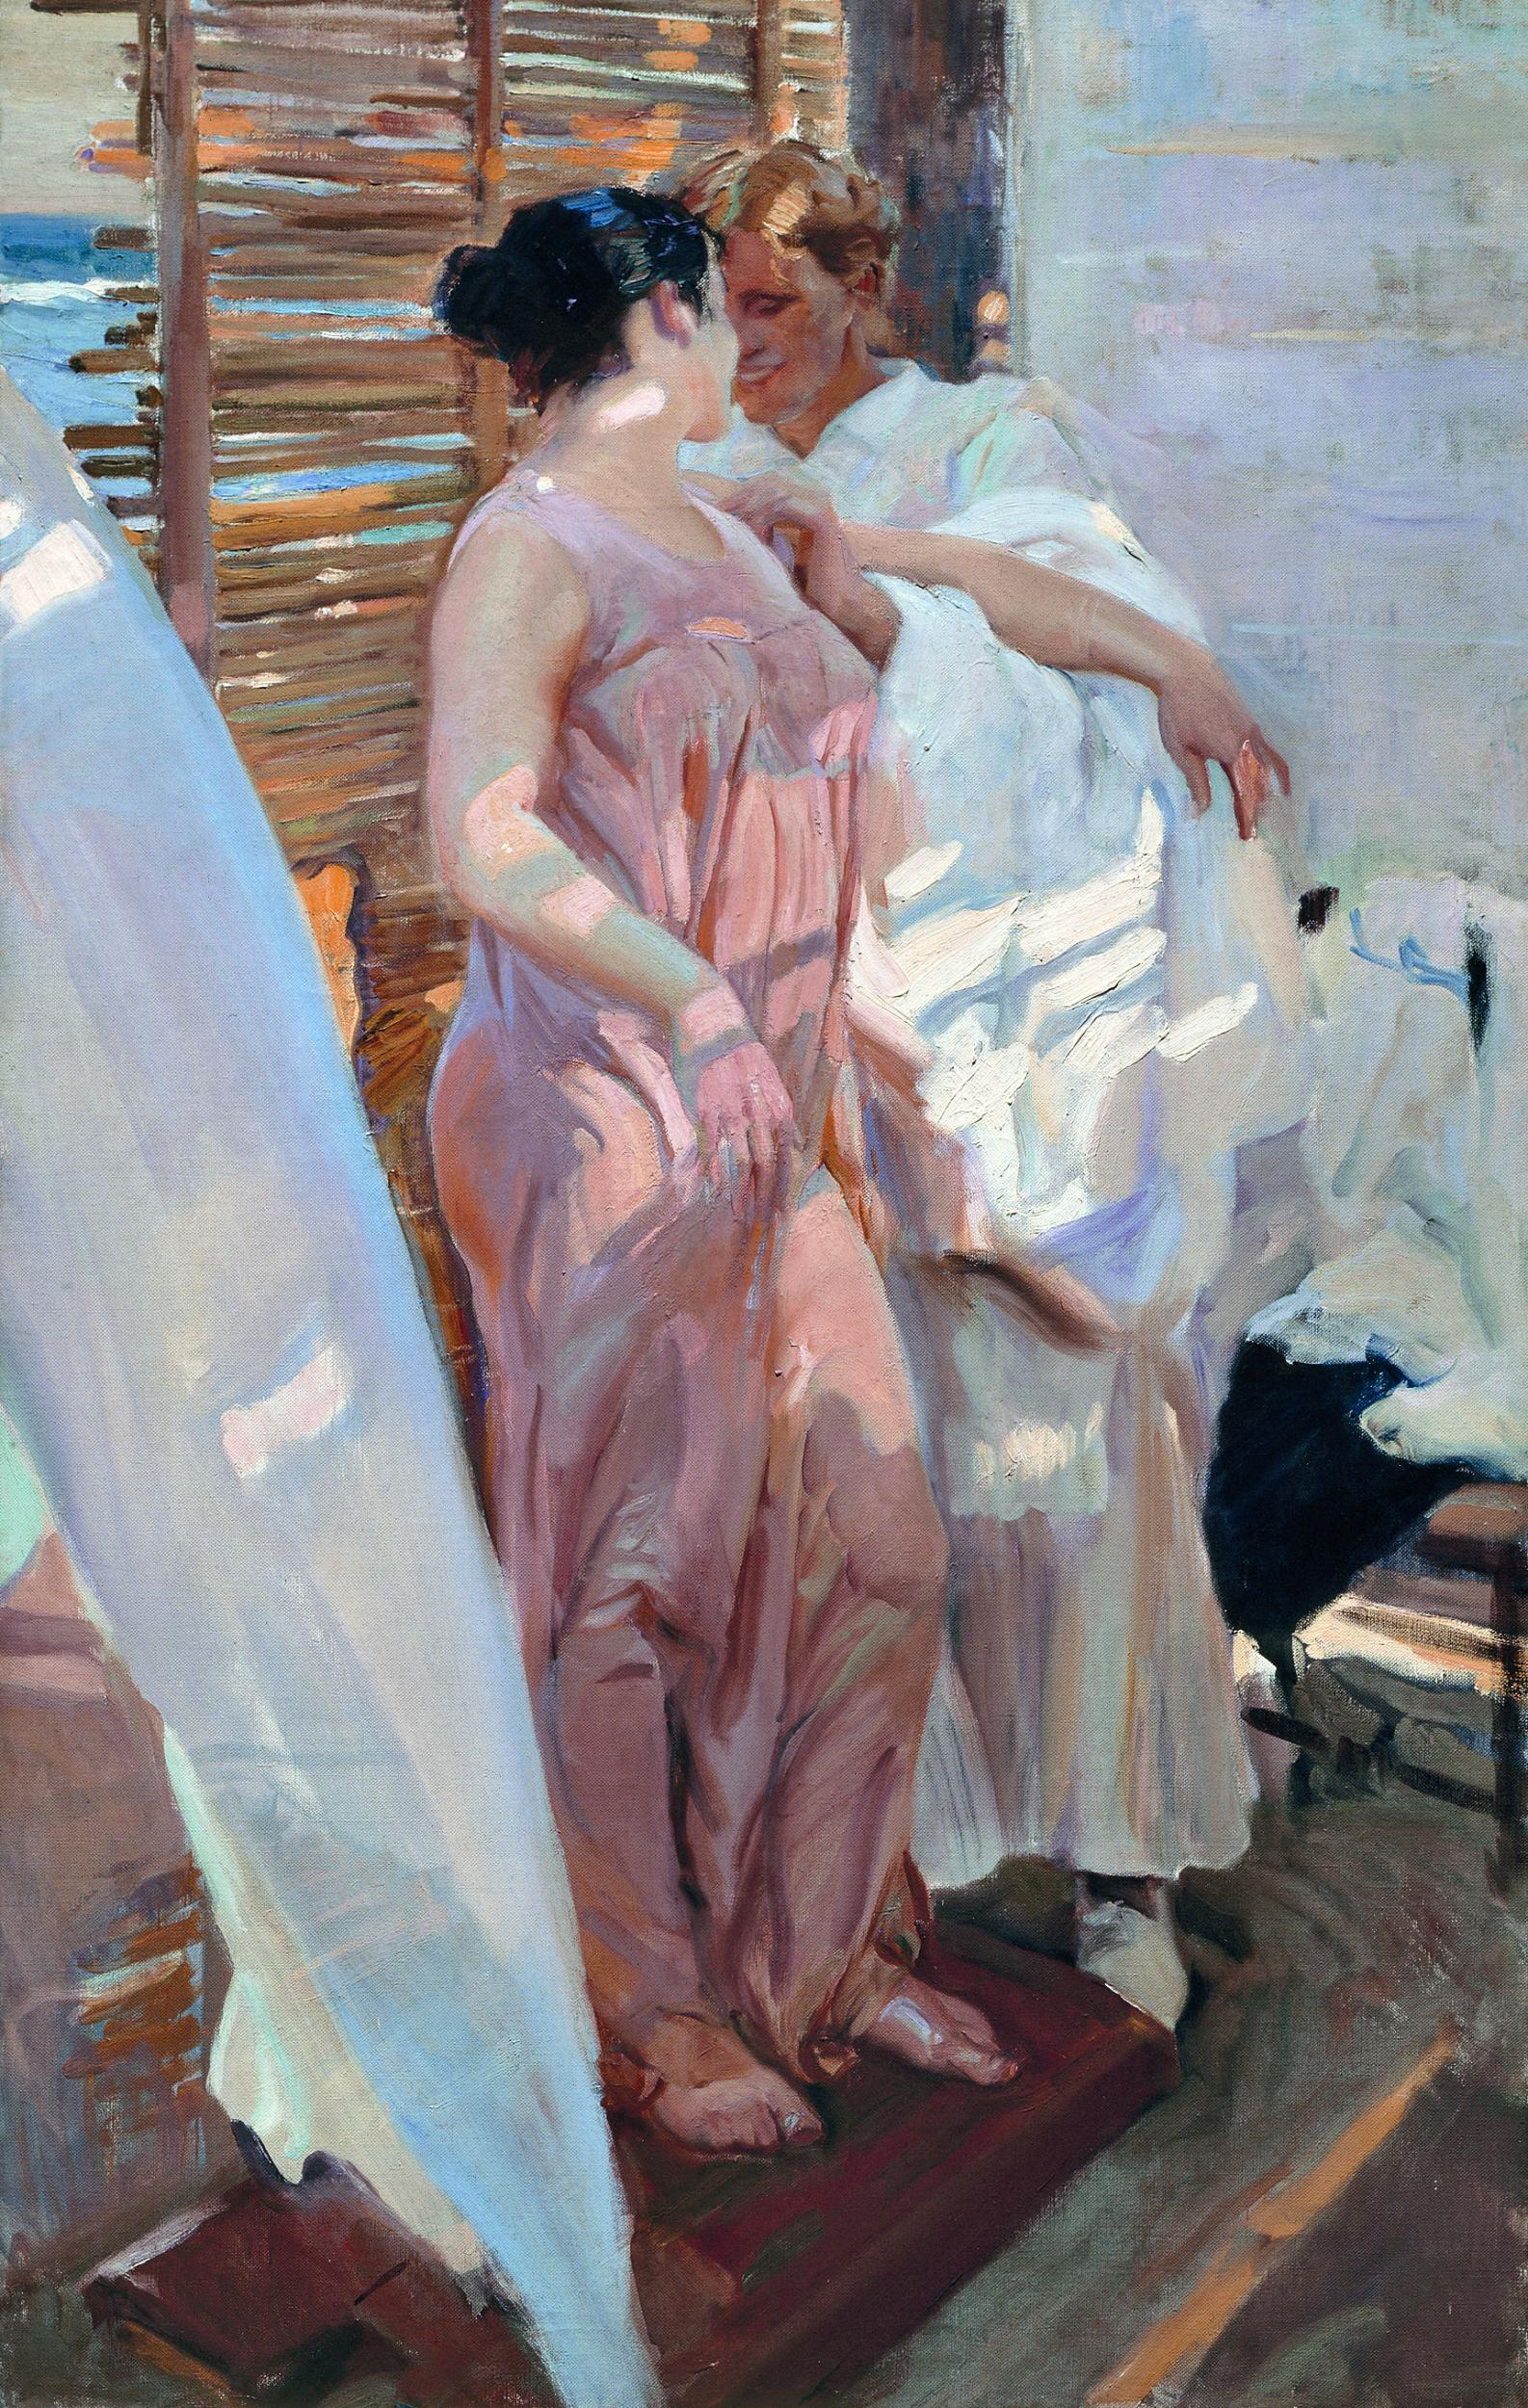 'THE PINK ROBE' 1916 2.08 X 1.26 M. A COUPLE DRESSING IN A BEACH CABIN (MUSEO SOROLLA, MADRID)